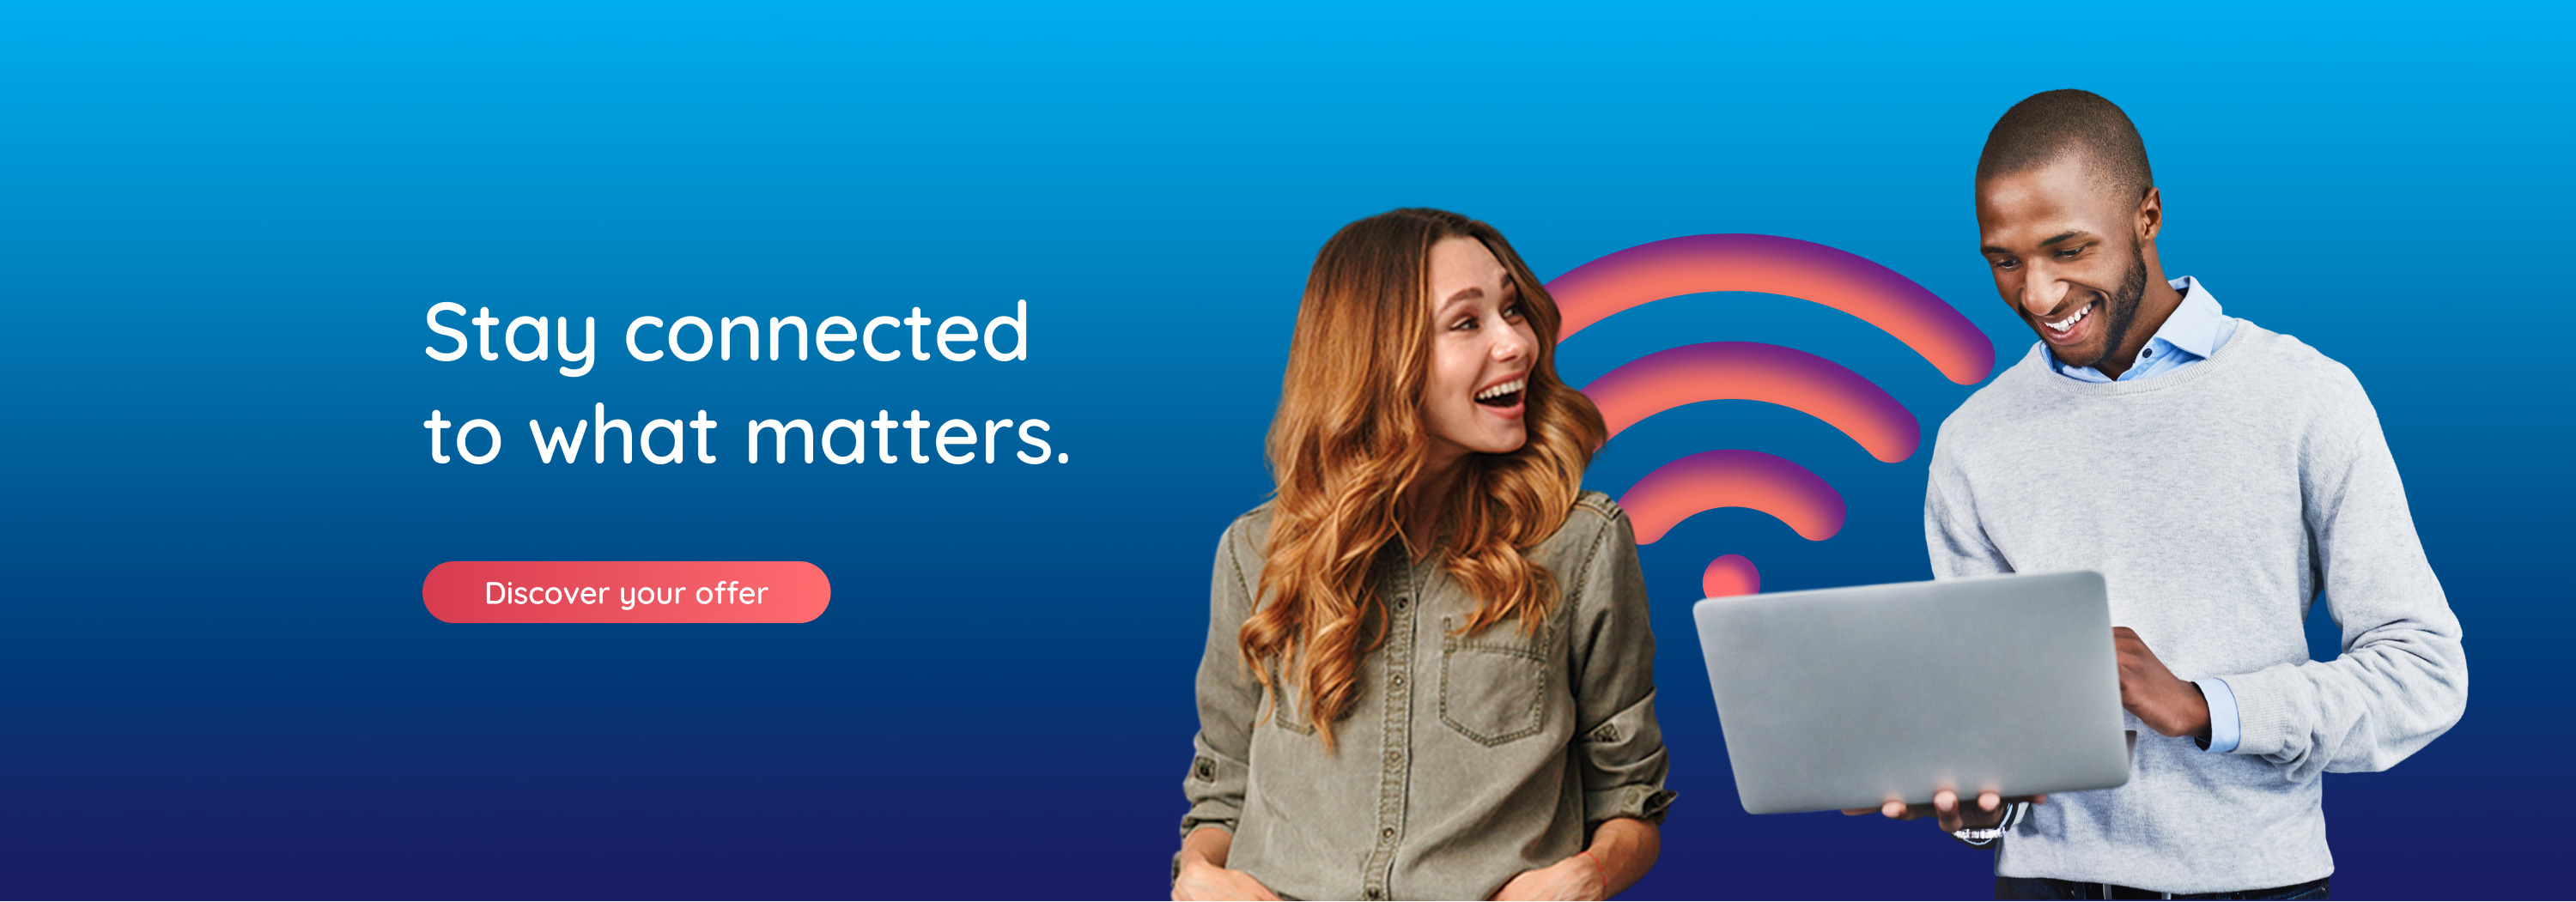 Stay connected to what matters. Discover your offer